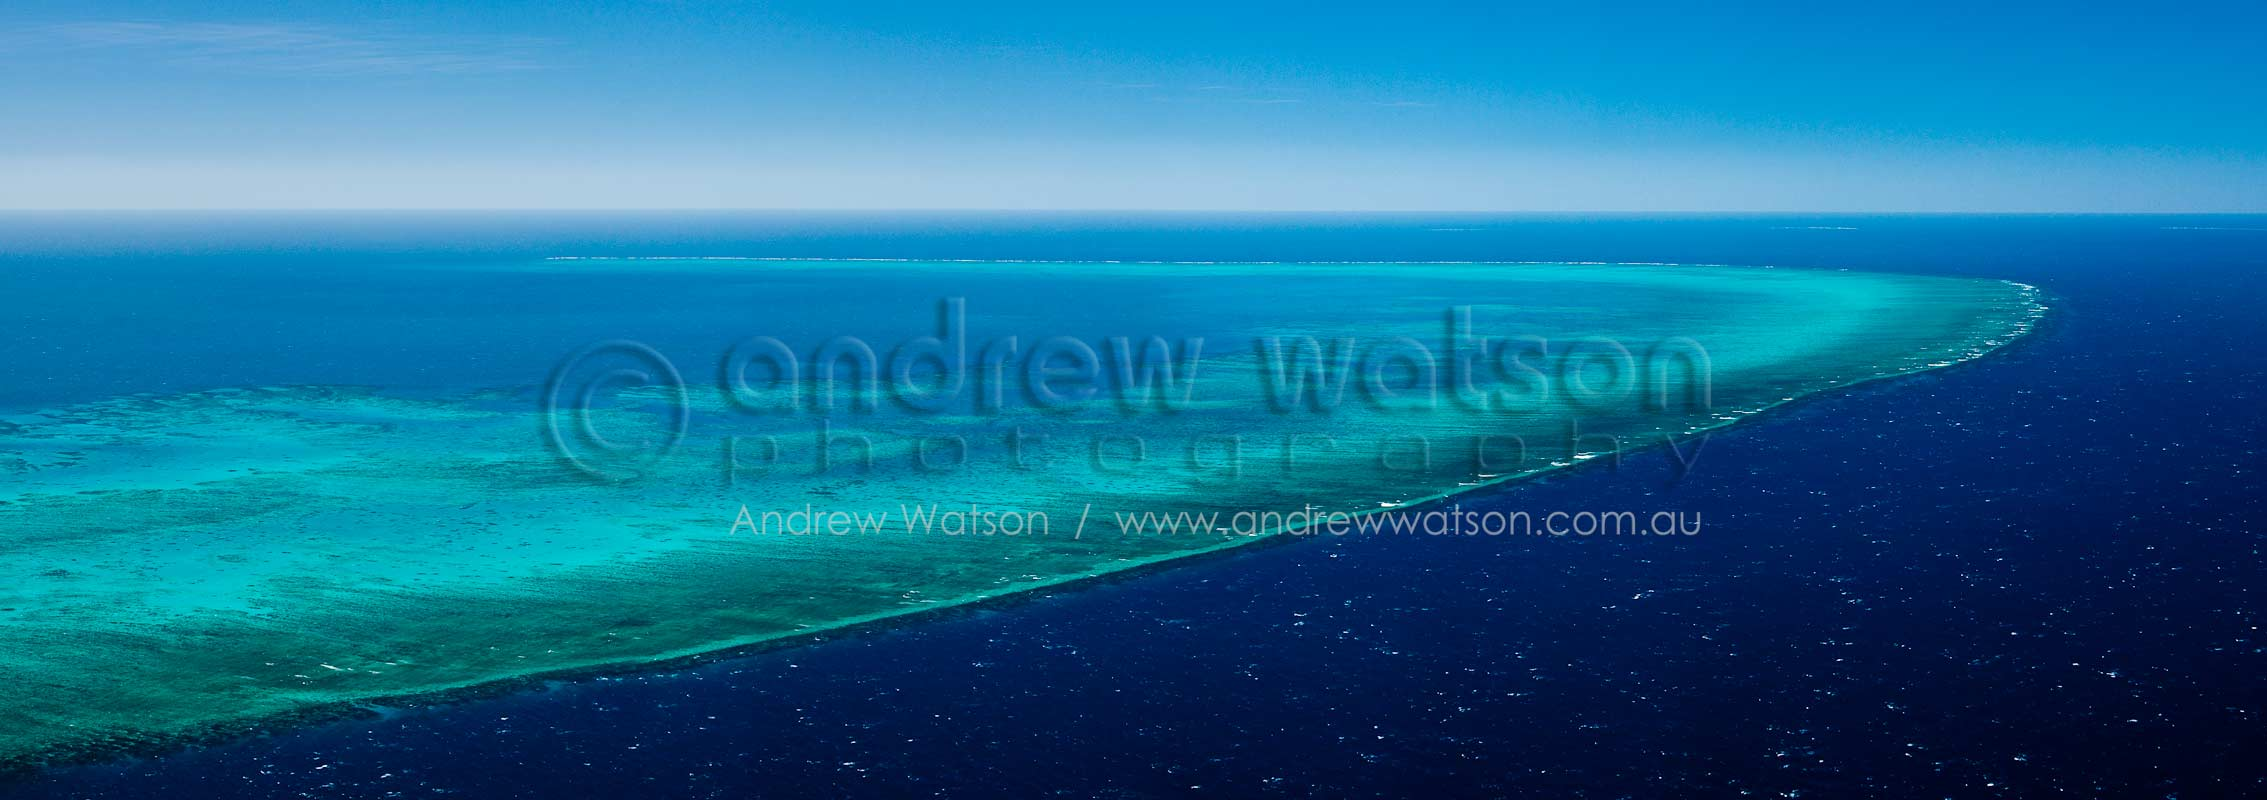 Aerial view of Arlington ReefGreat Barrier Reef, North QueenslandImage available for licensing or as a fine-art print... please enquire